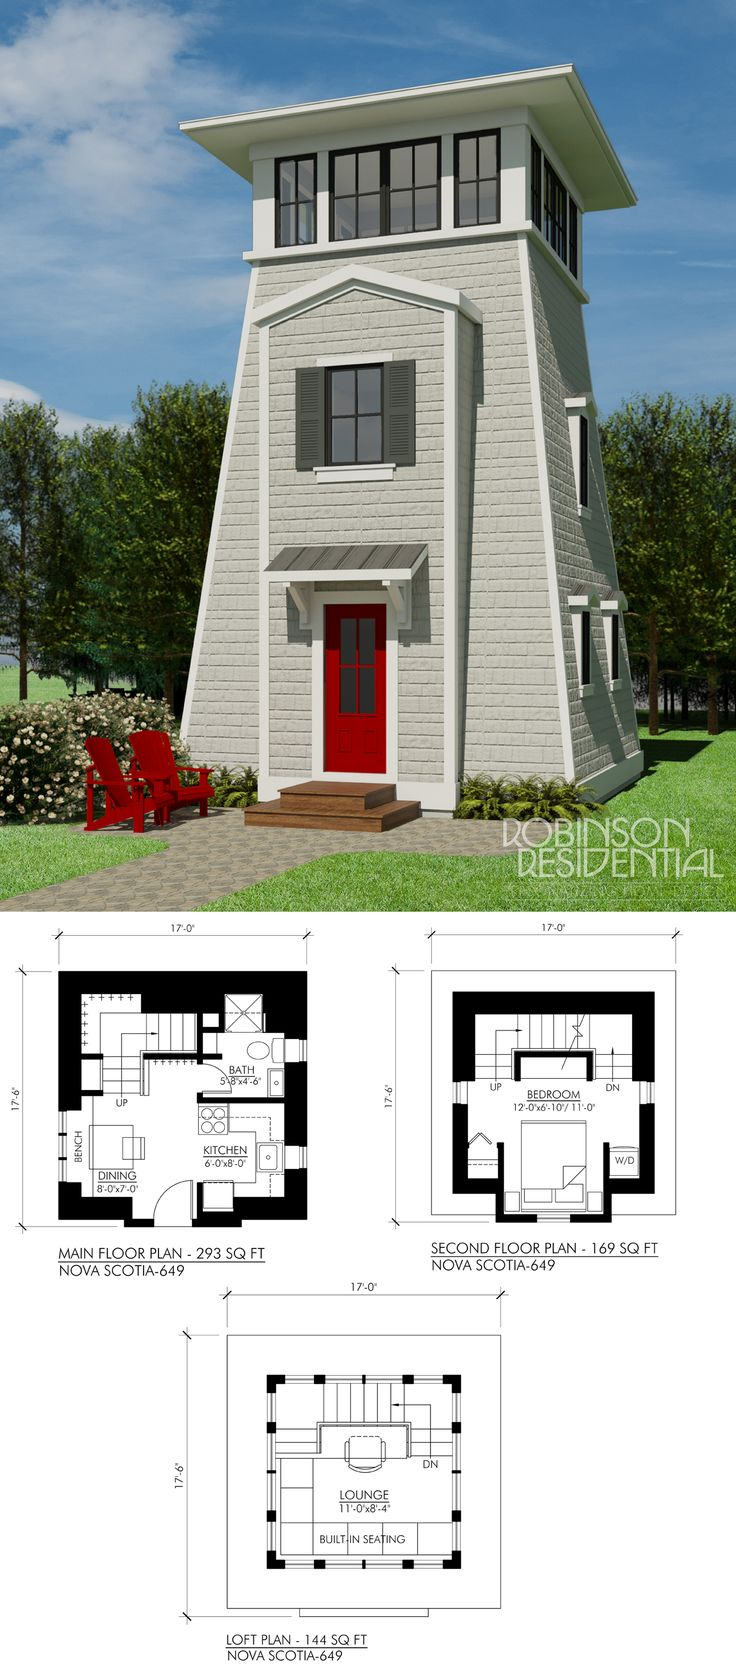 Best 25 small homes ideas on pinterest small home plans for Small house plans images